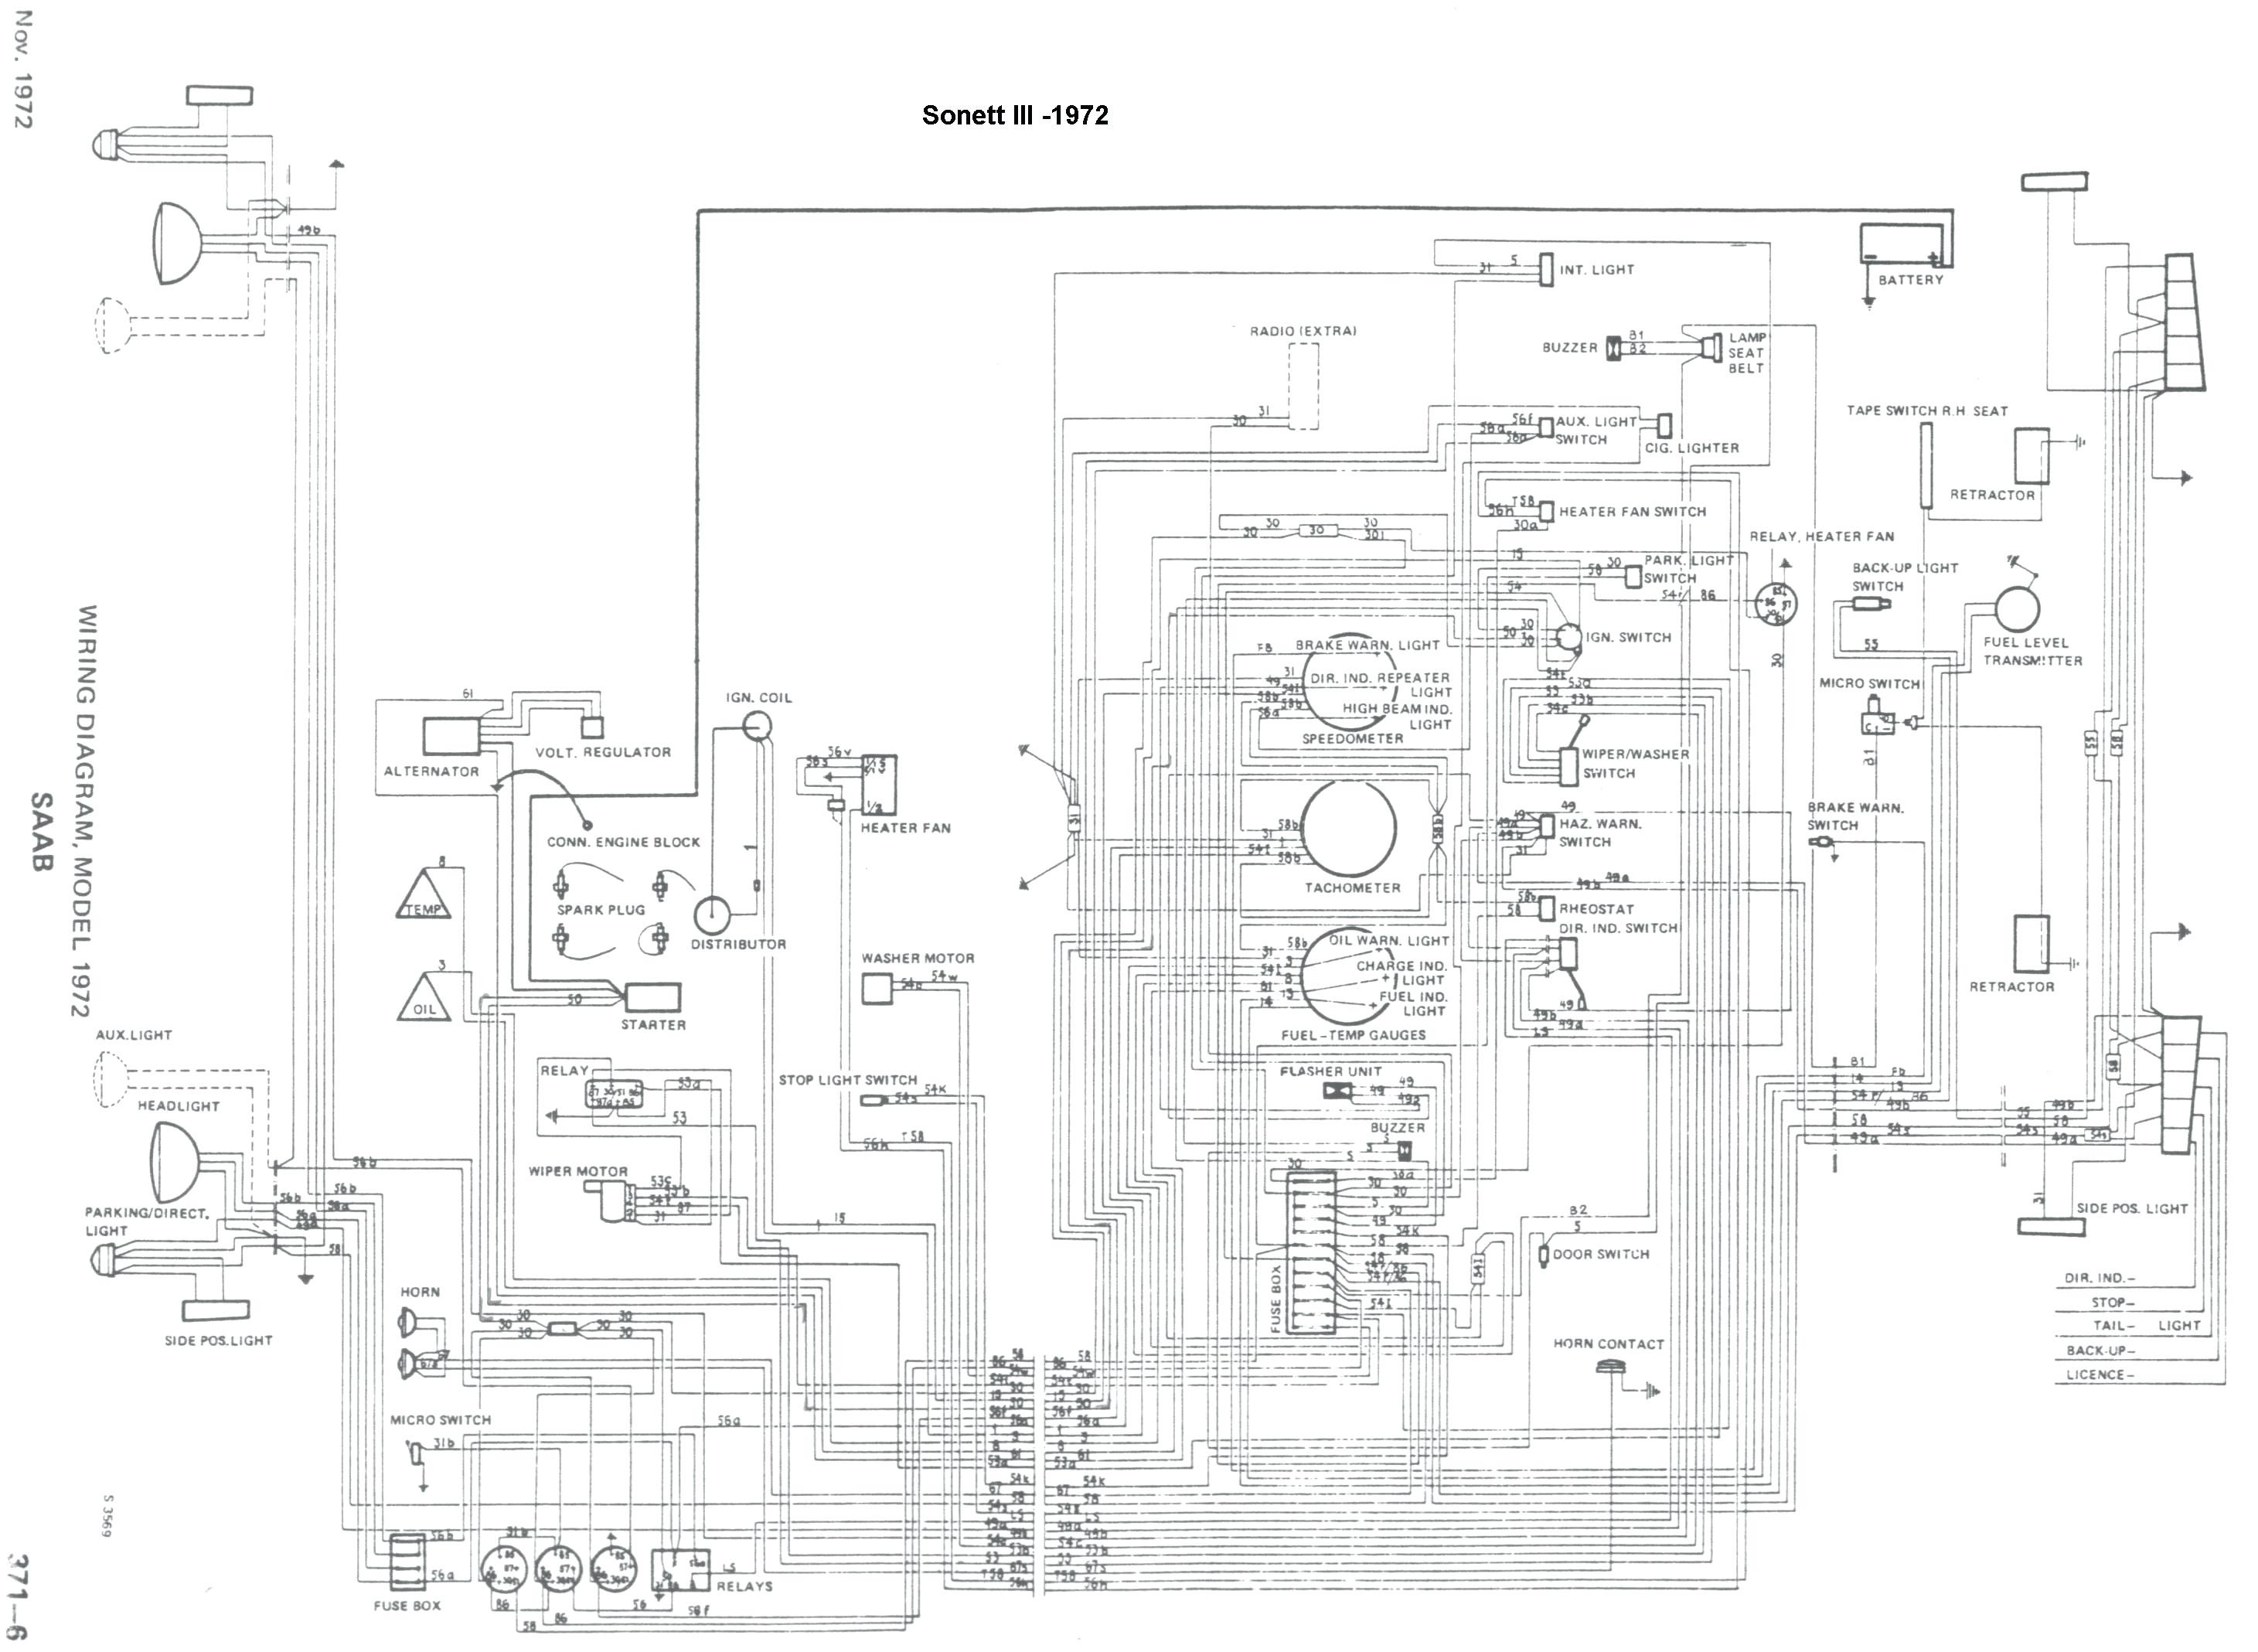 wiring diagram for saab 9000 wiring library 1986 saab 900 starter wiring diagram saabnetcom saab sonett bulletin board factory manual wiring diagram rh casiaroc co wiring diagrams saab c900